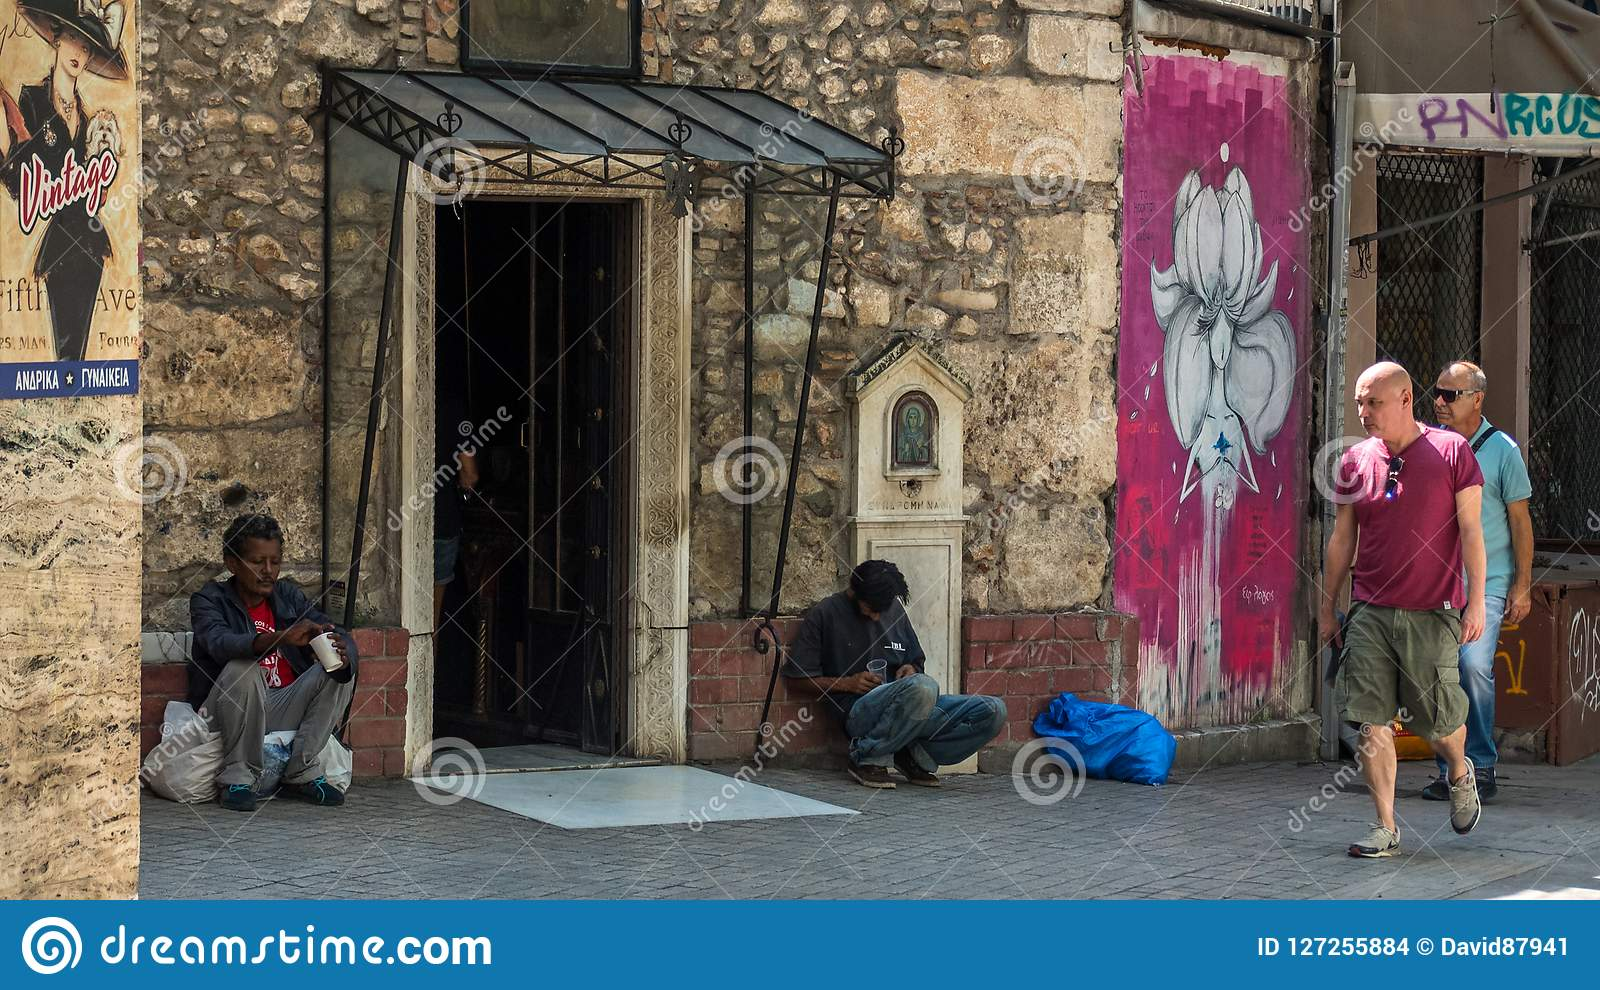 Athens Greece/August 17, 2018: Two homeless men in Athens